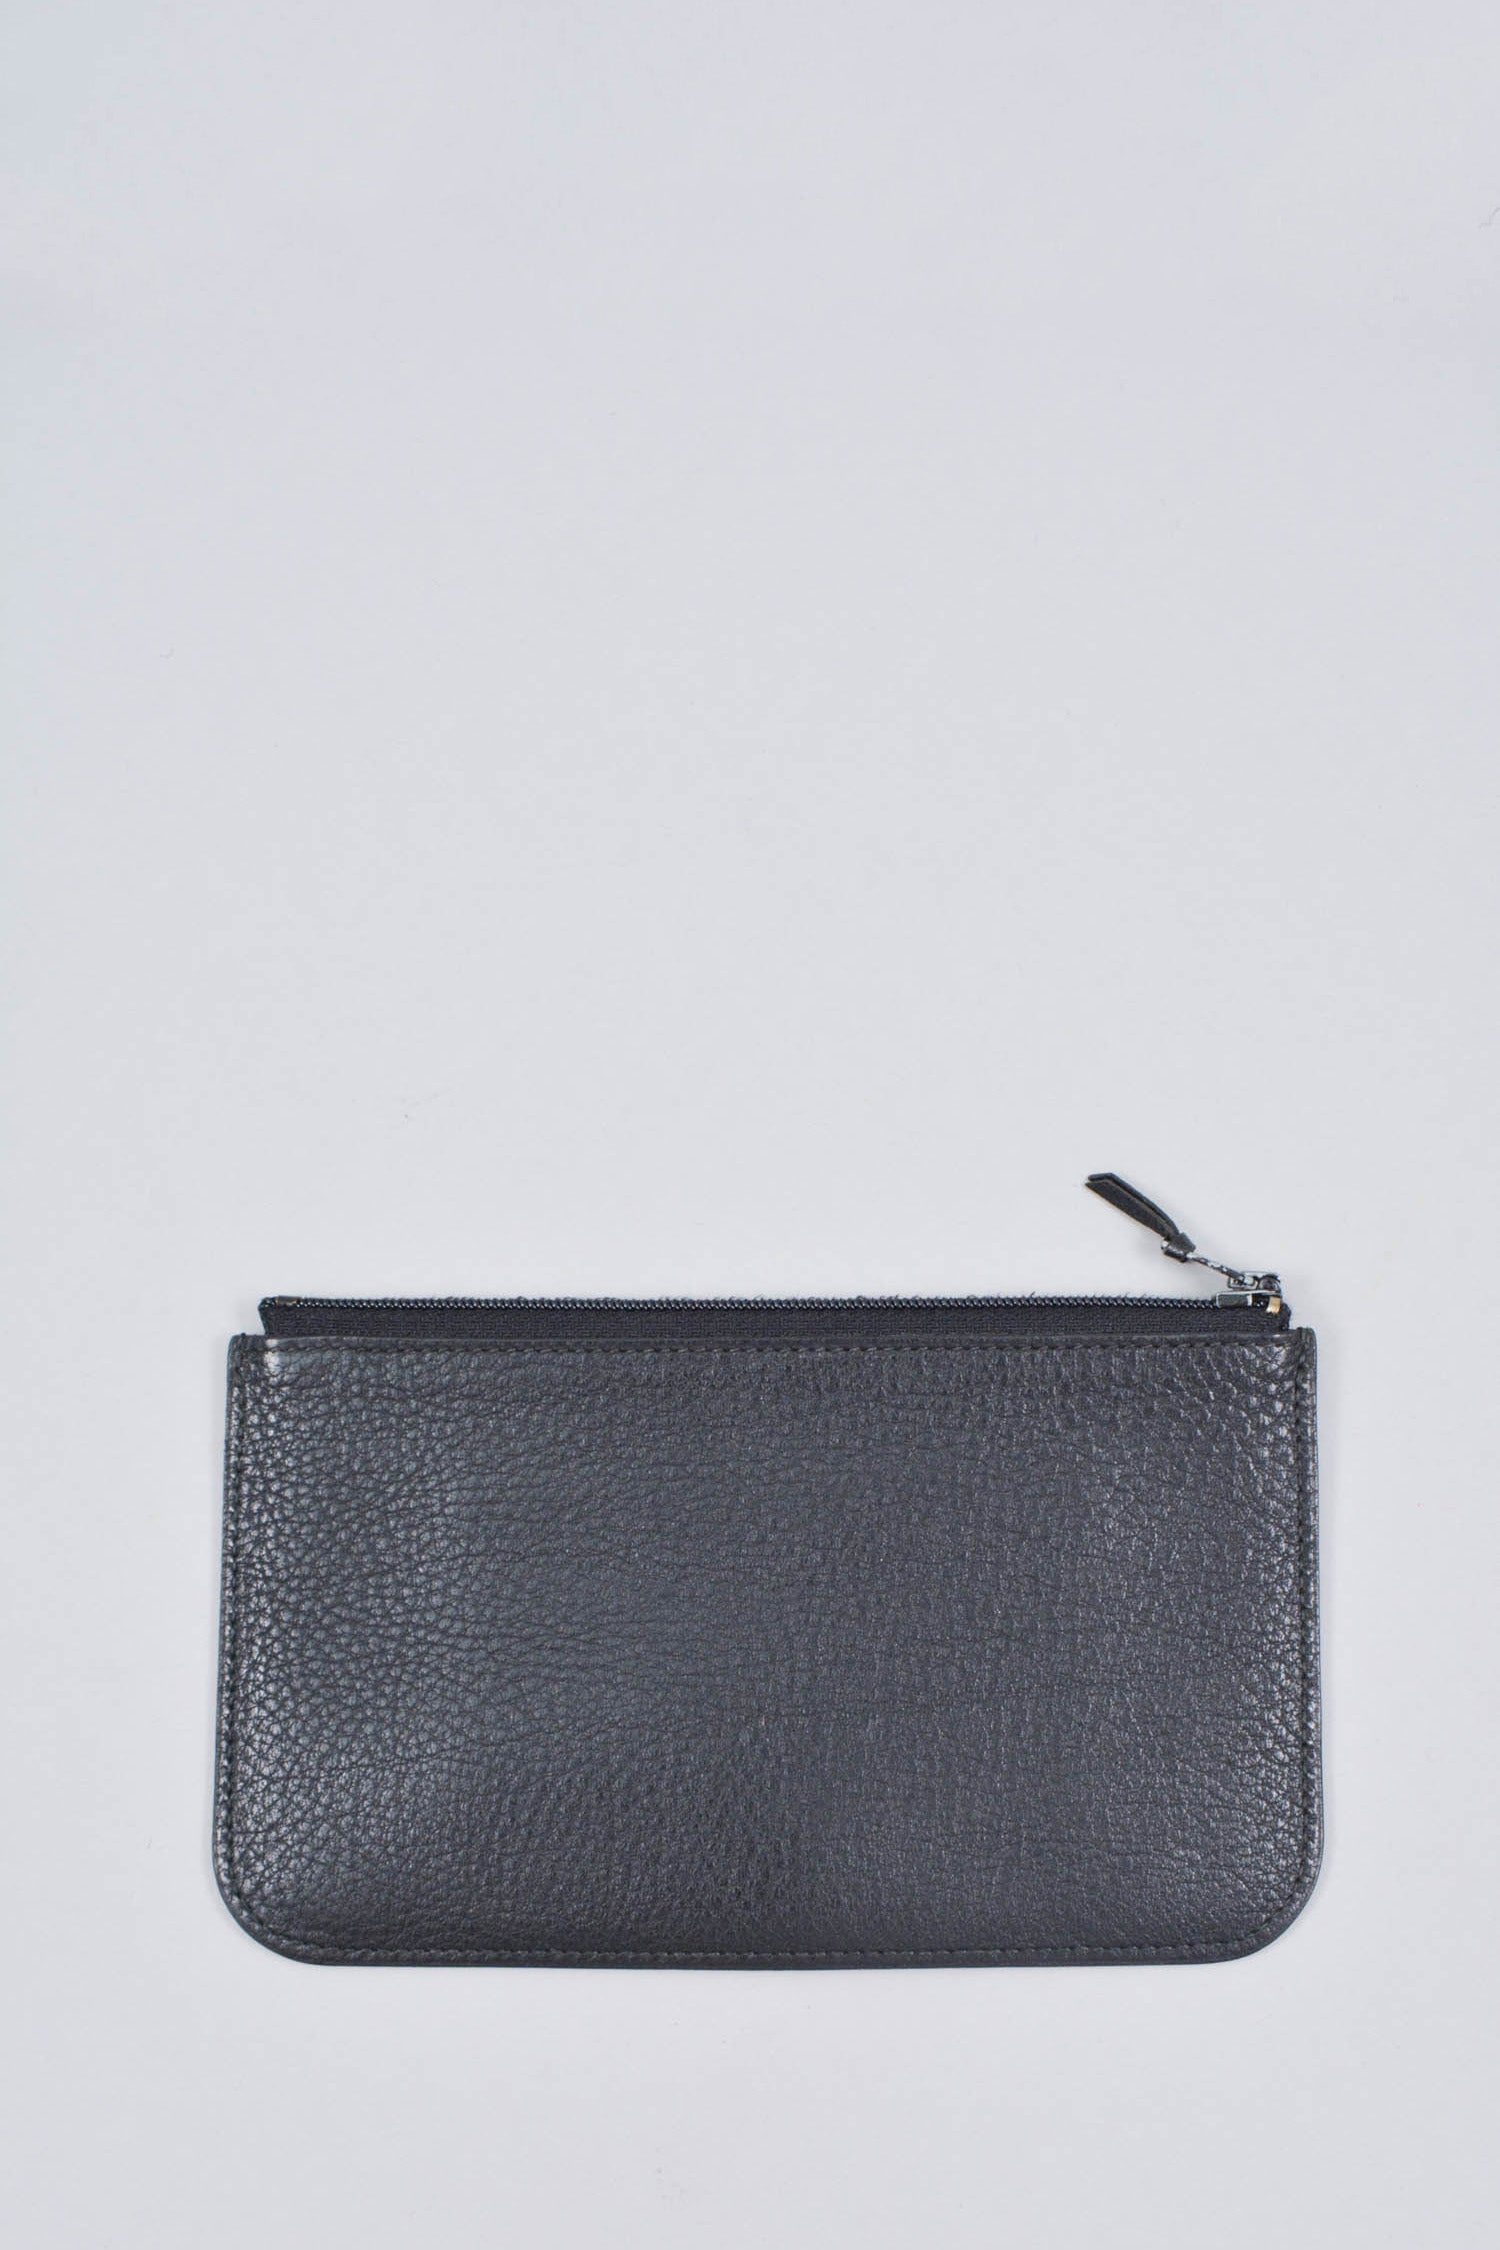 Hermes Black Togo Dogon Combined Wallet (Est. Retail $3000)